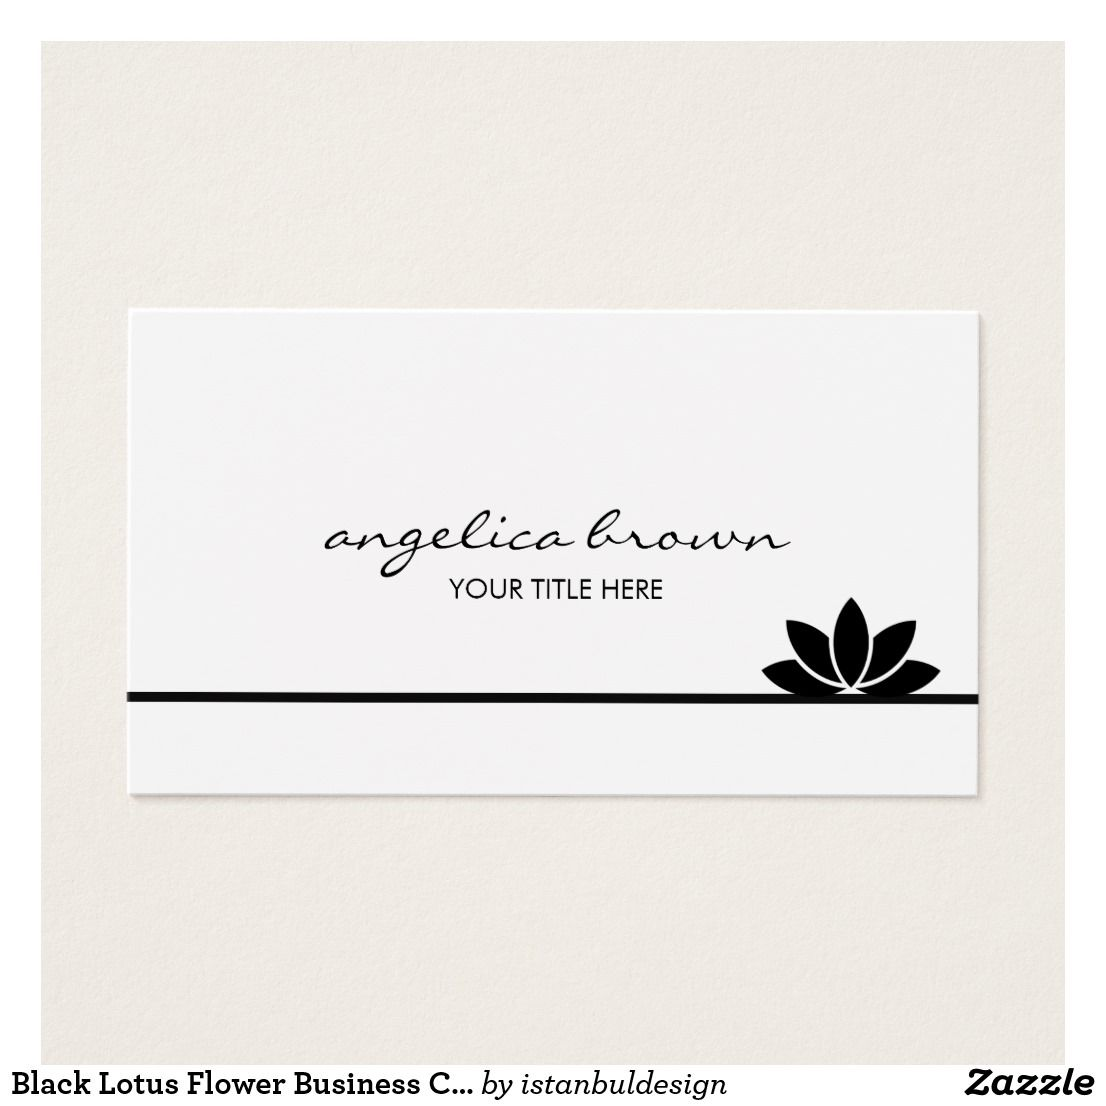 Black Lotus Flower Business Card | Business cards and Business